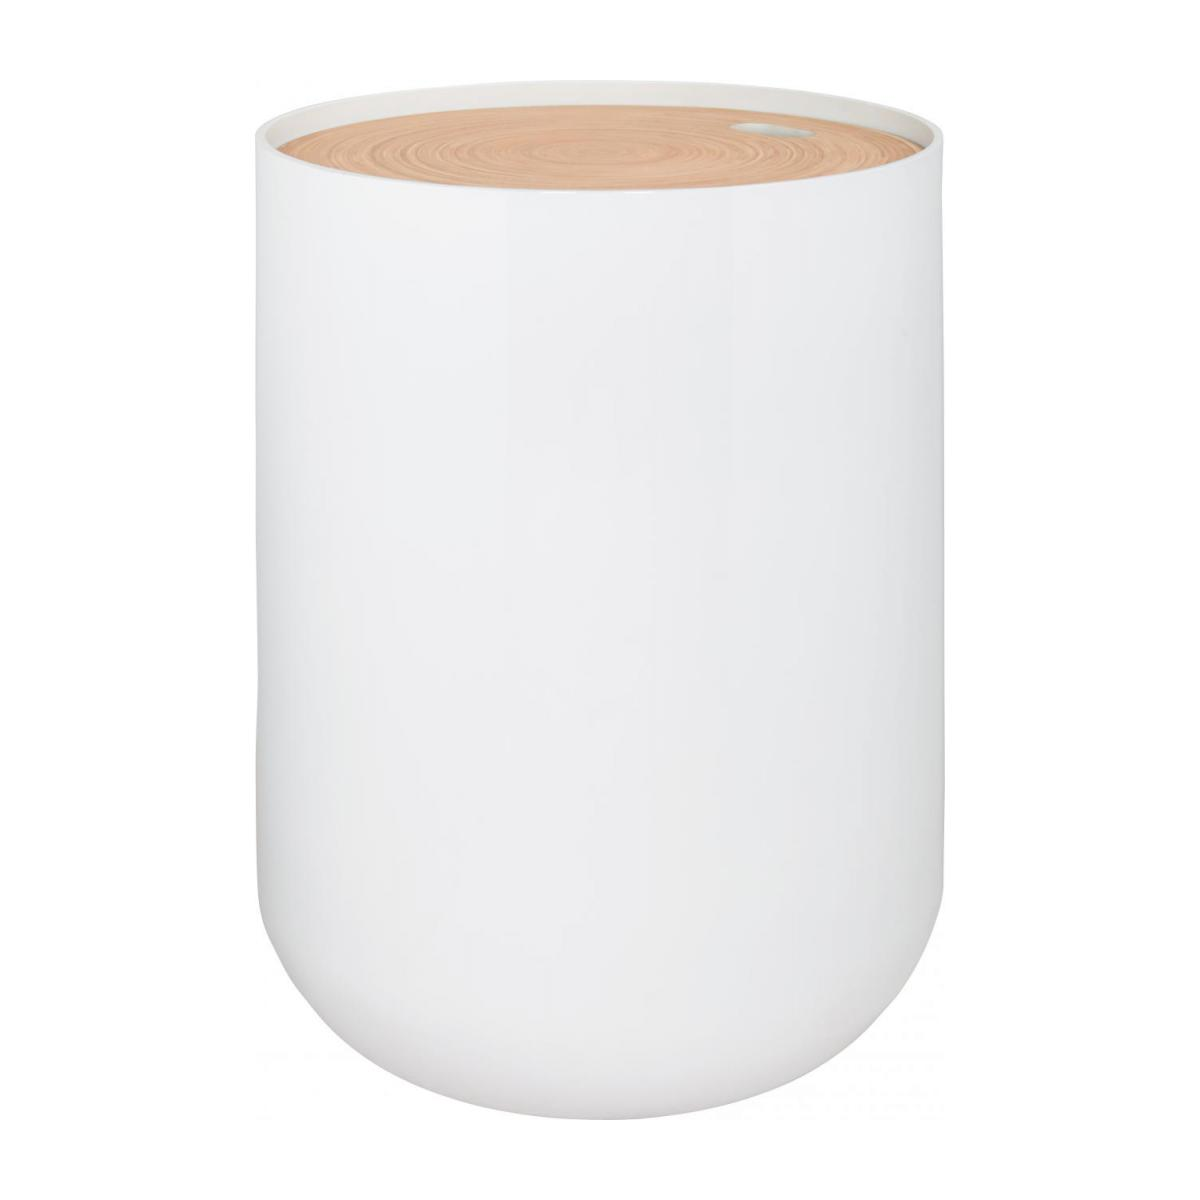 White bamboo side table 40cm n°1